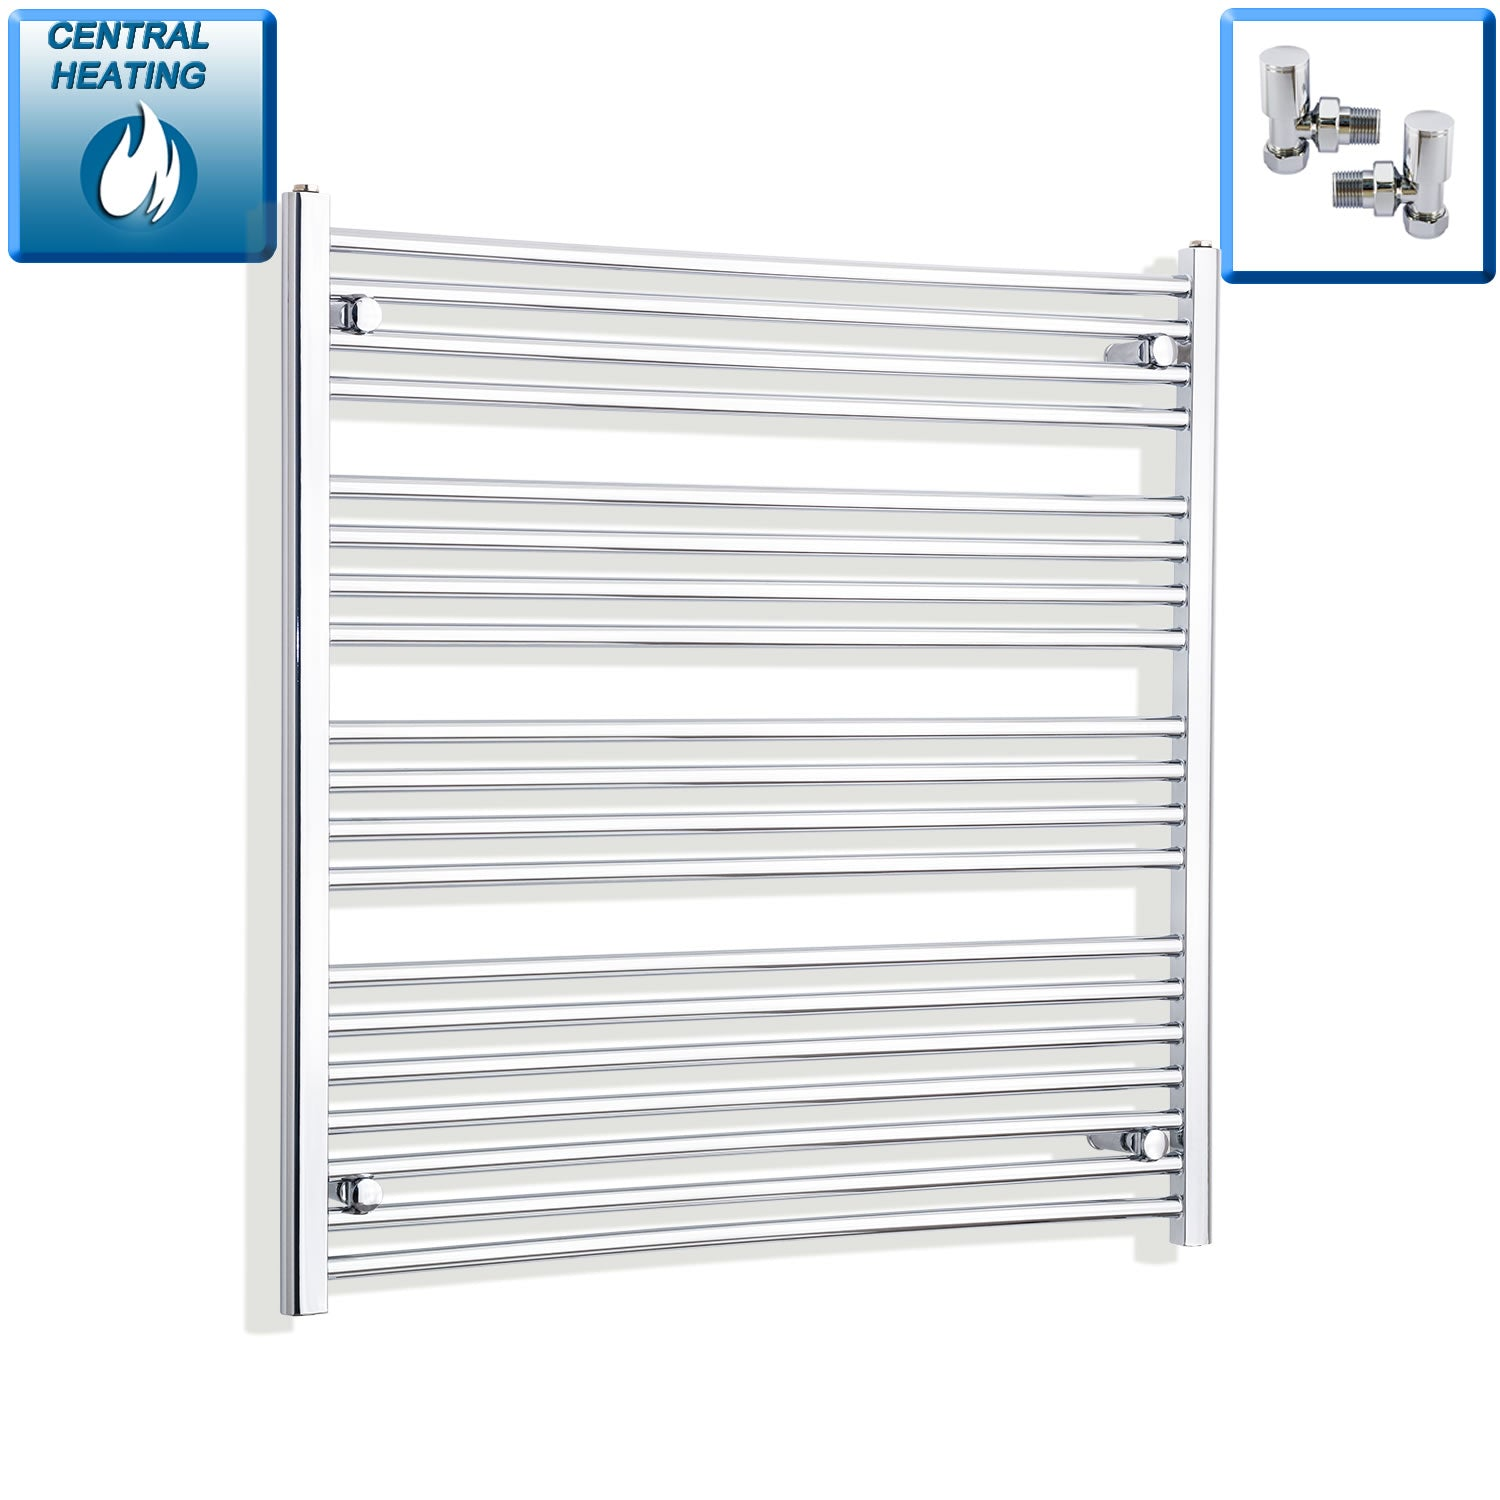 1100mm Wide 1000mm High Chrome Towel Rail Radiator With Angled Valve